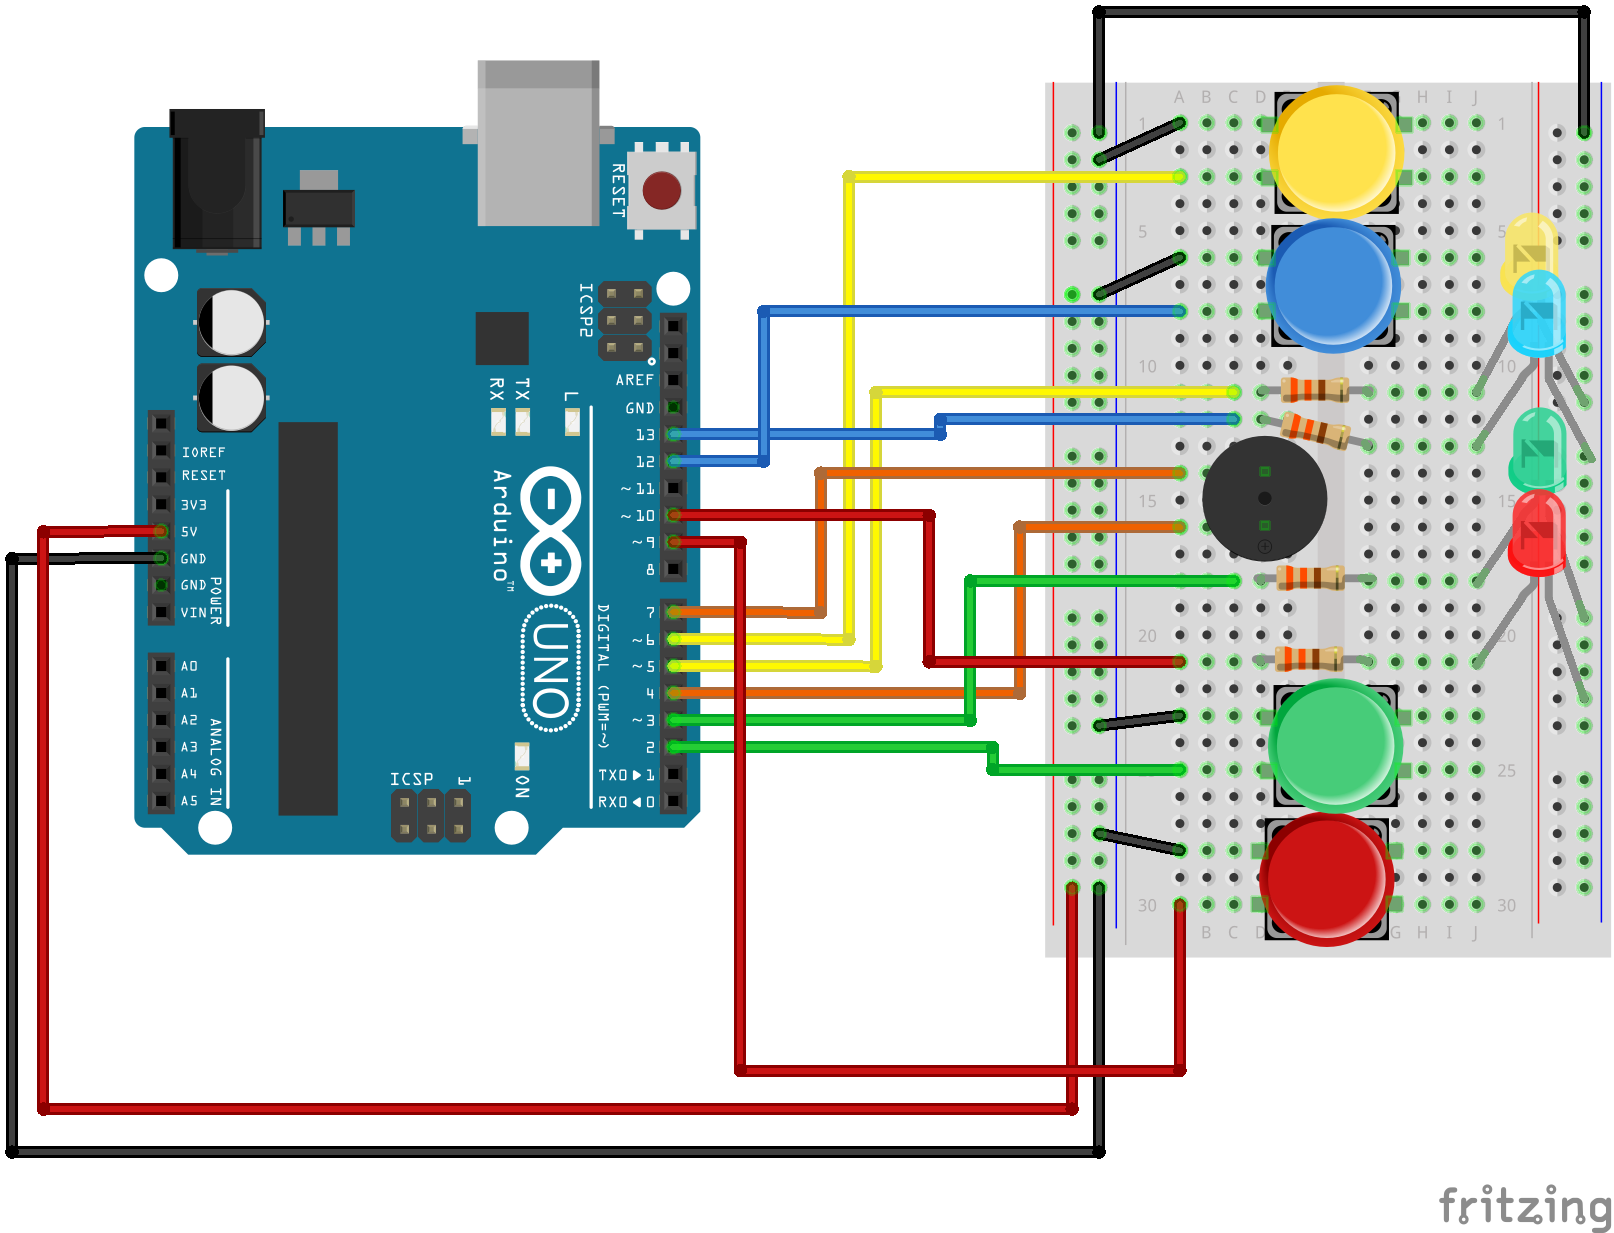 Pleasing Sik Experiment Guide For Arduino V3 3 Learn Sparkfun Com Wiring Cloud Hisonuggs Outletorg